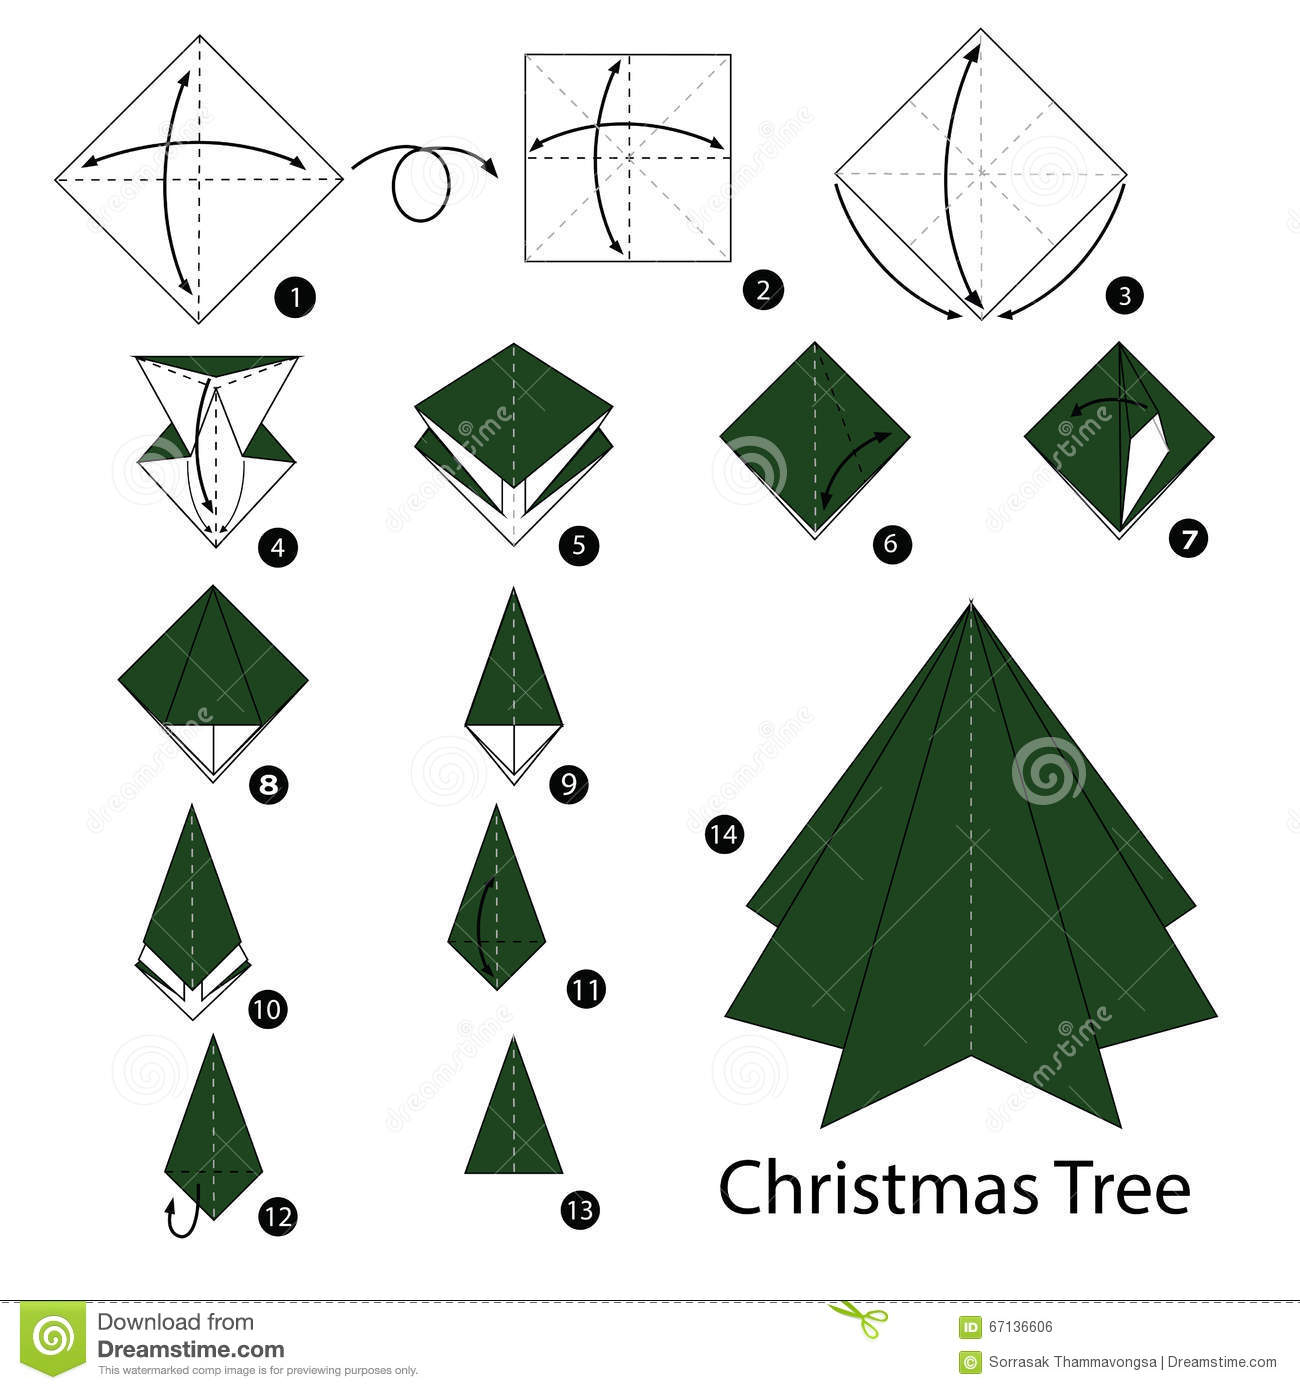 Christmas Tree Origami Stock Photos Image - amcordesign.us